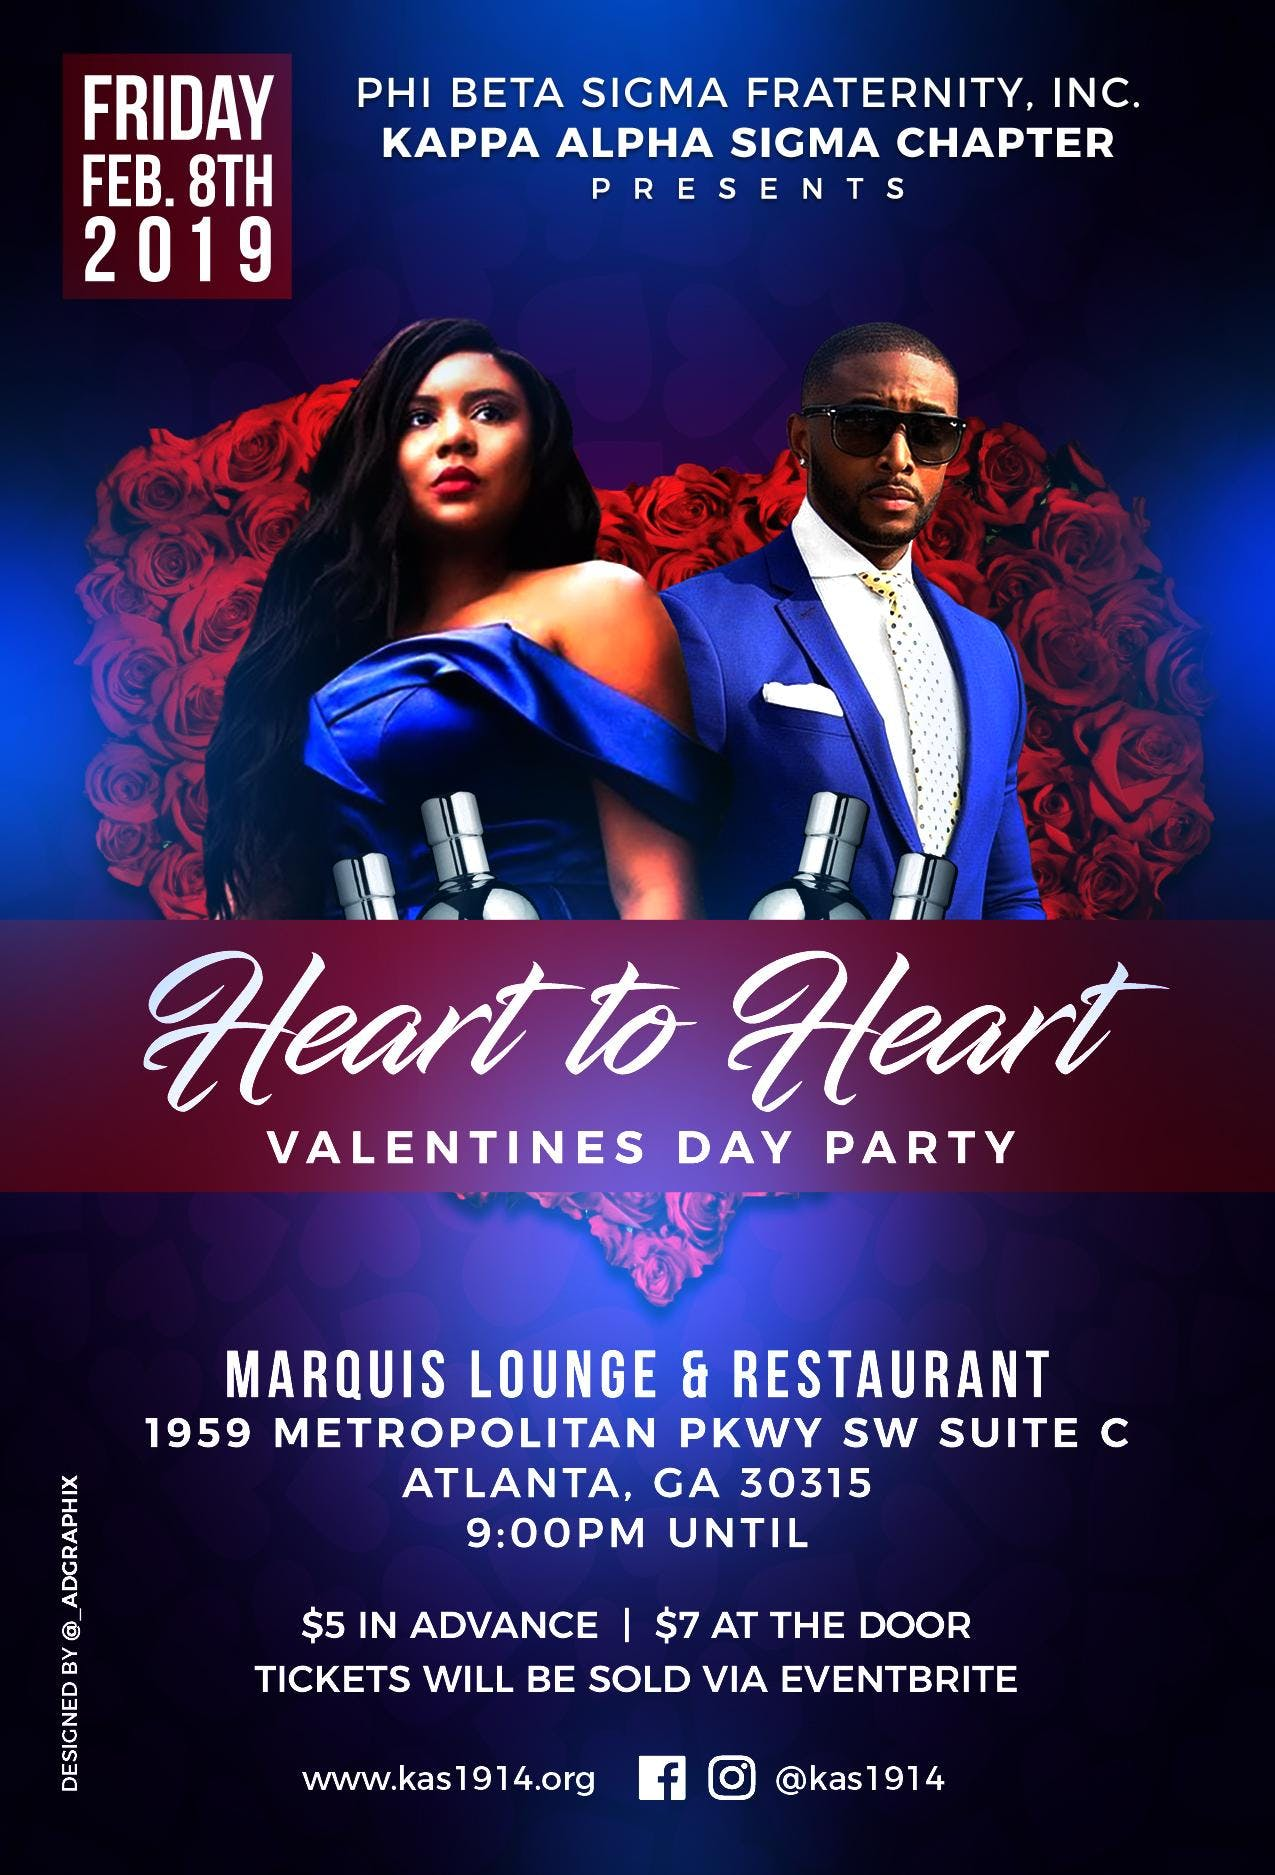 Heart To Heart Valentines Day Party 8 Feb 2019